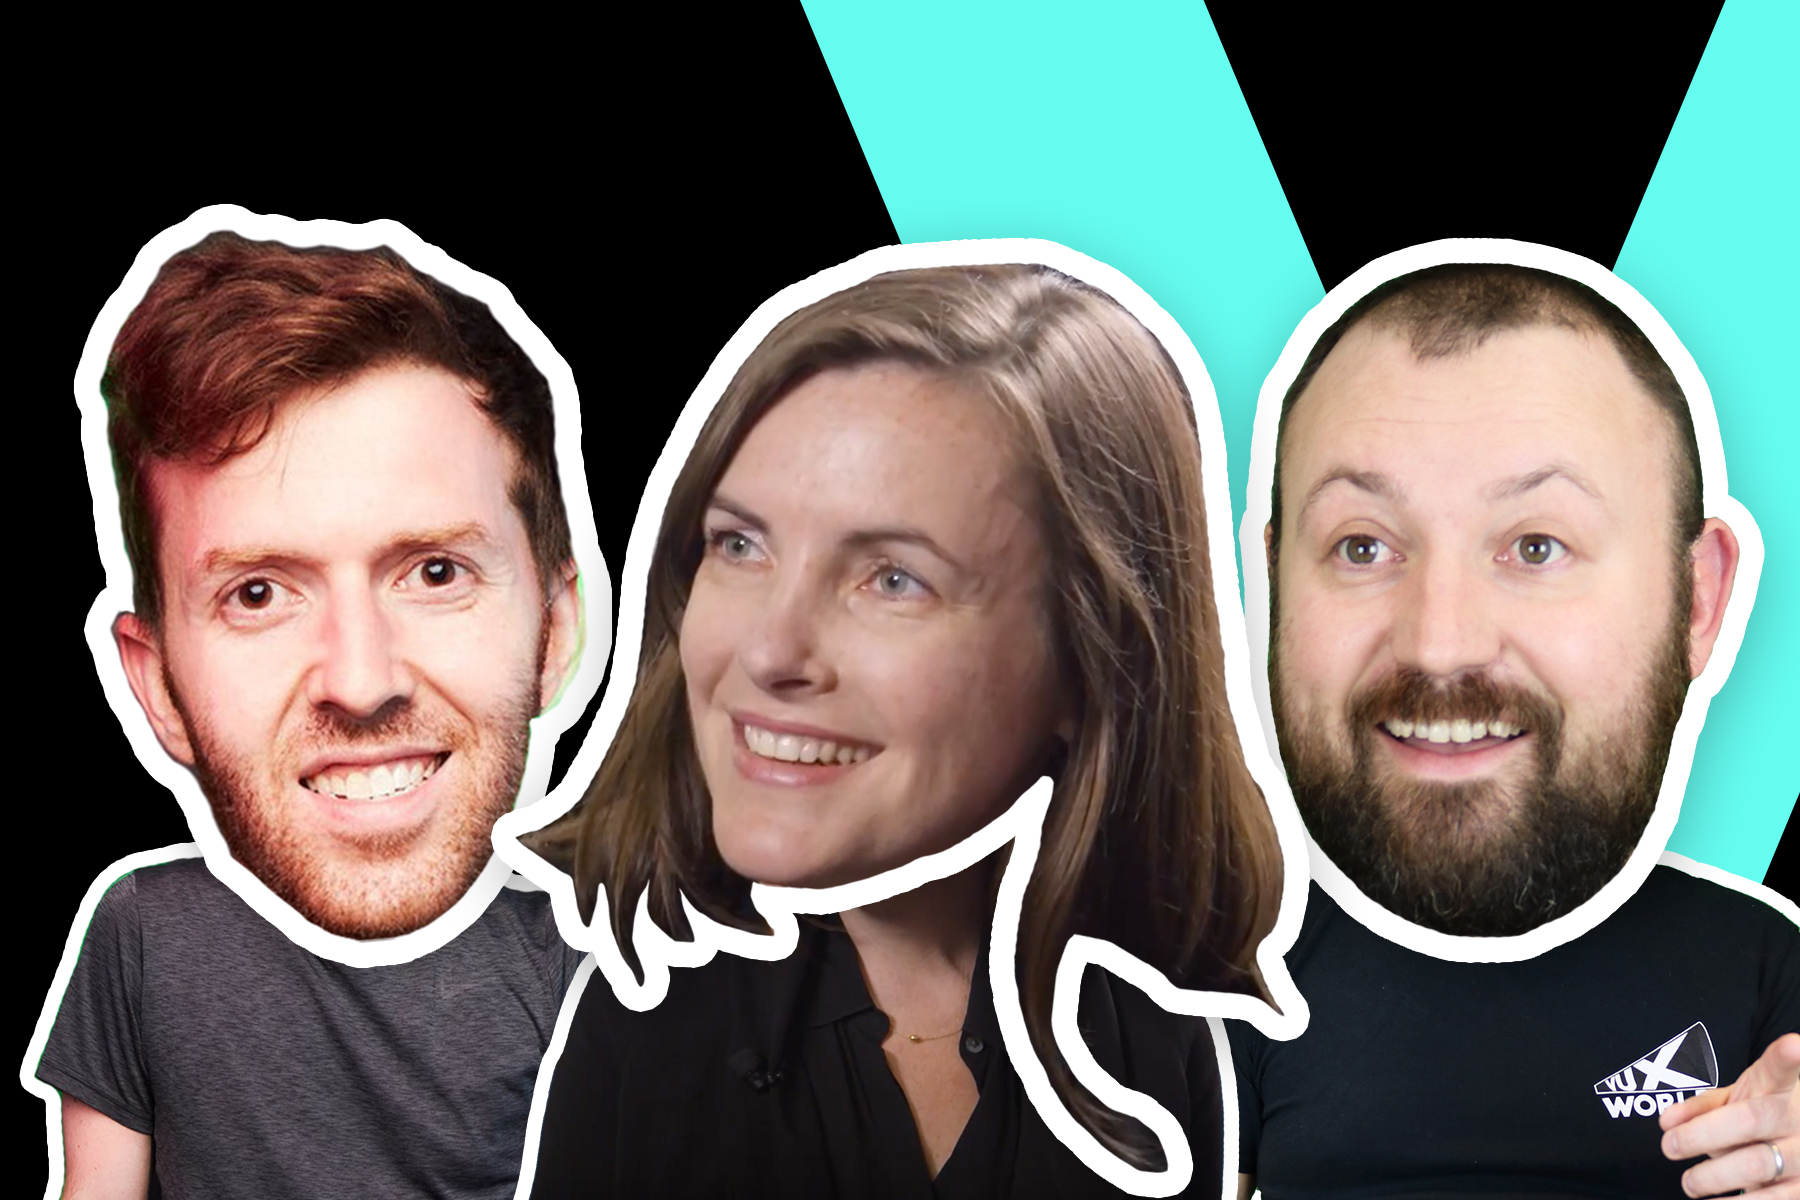 Claire Mitchell of VaynerMedia and VaynerSmart joins Kane Simms and Dustin Coates to discuss situational design and sound design on VUX World